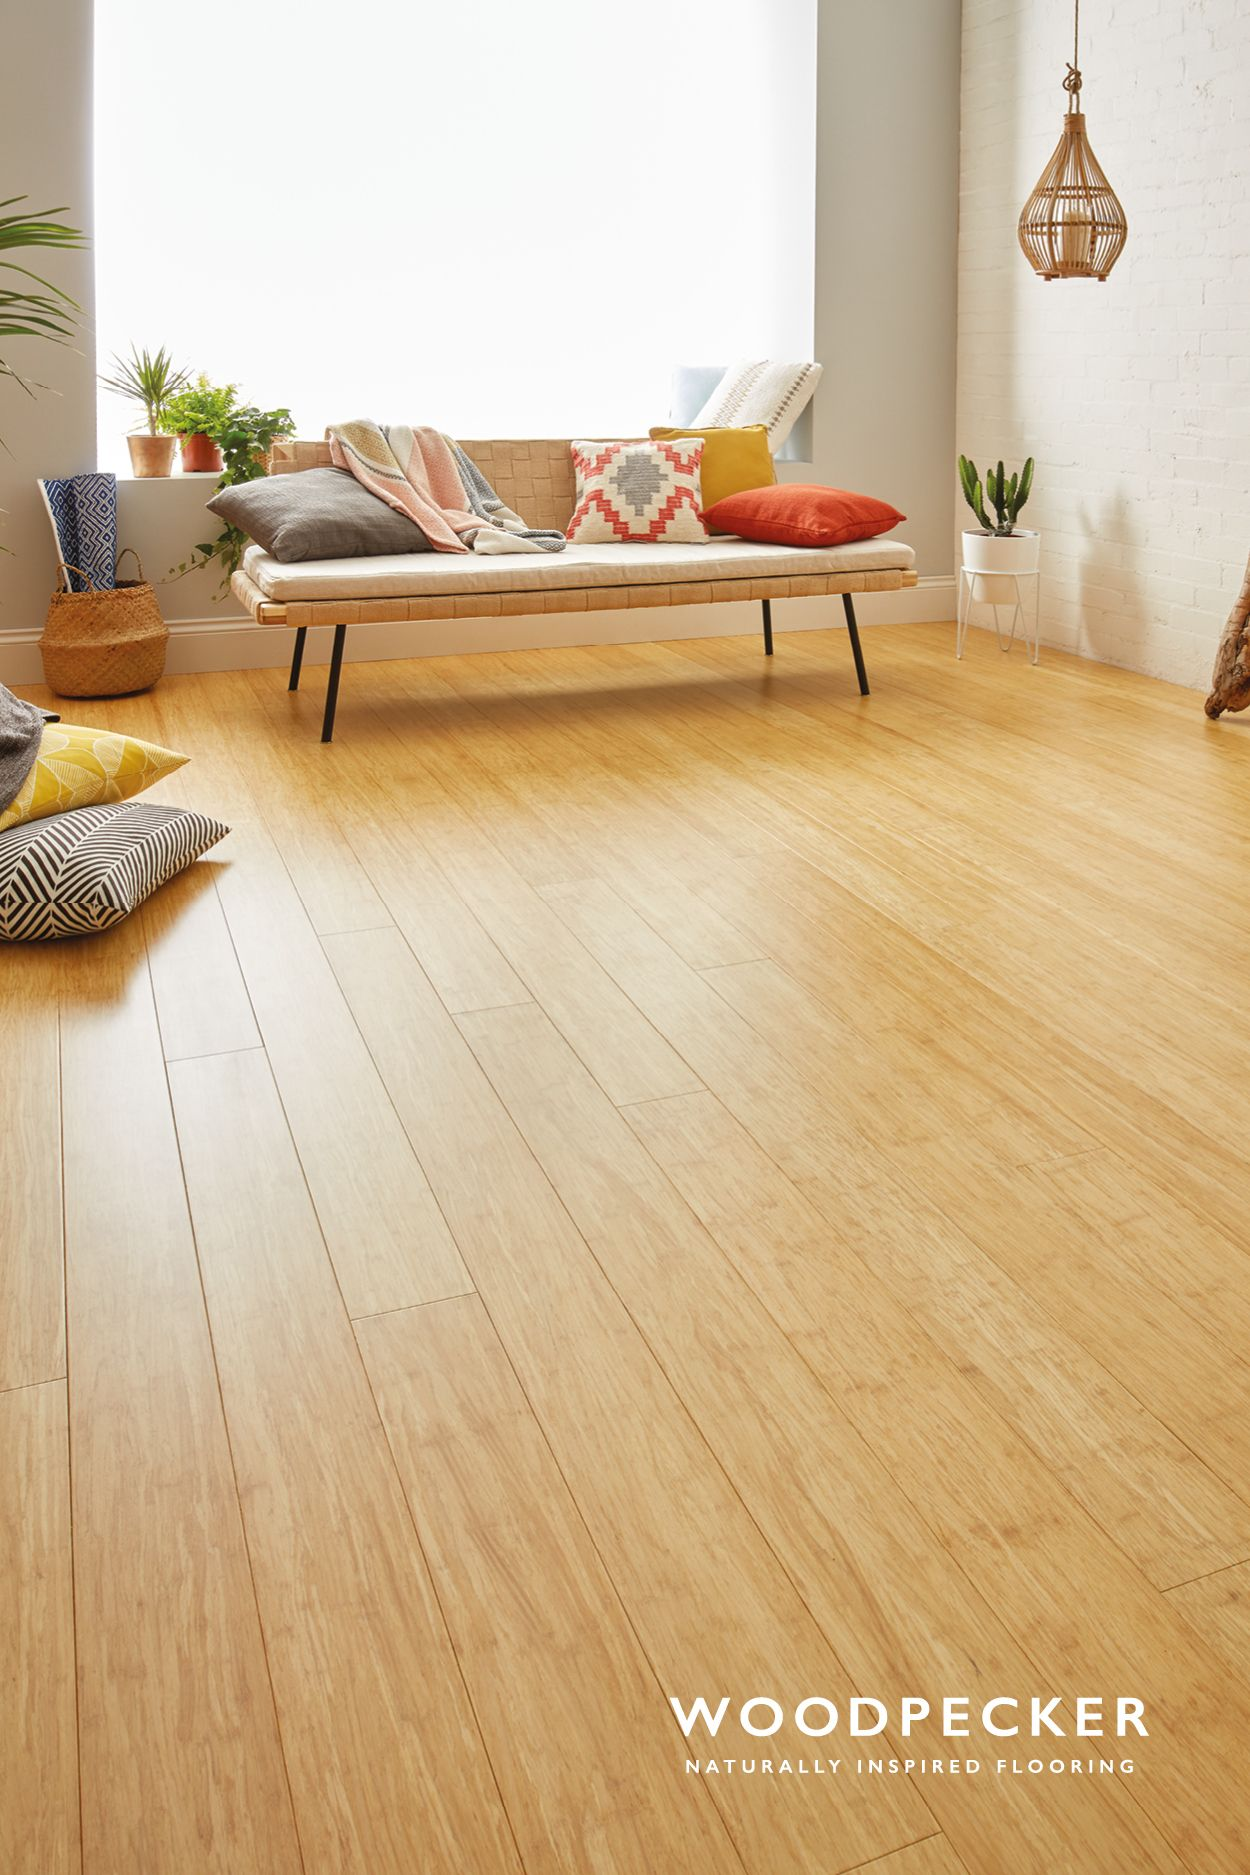 Love The Light And Spacious Feel Of This Natural Bamboo Floor Get A Free Sample At Our Website